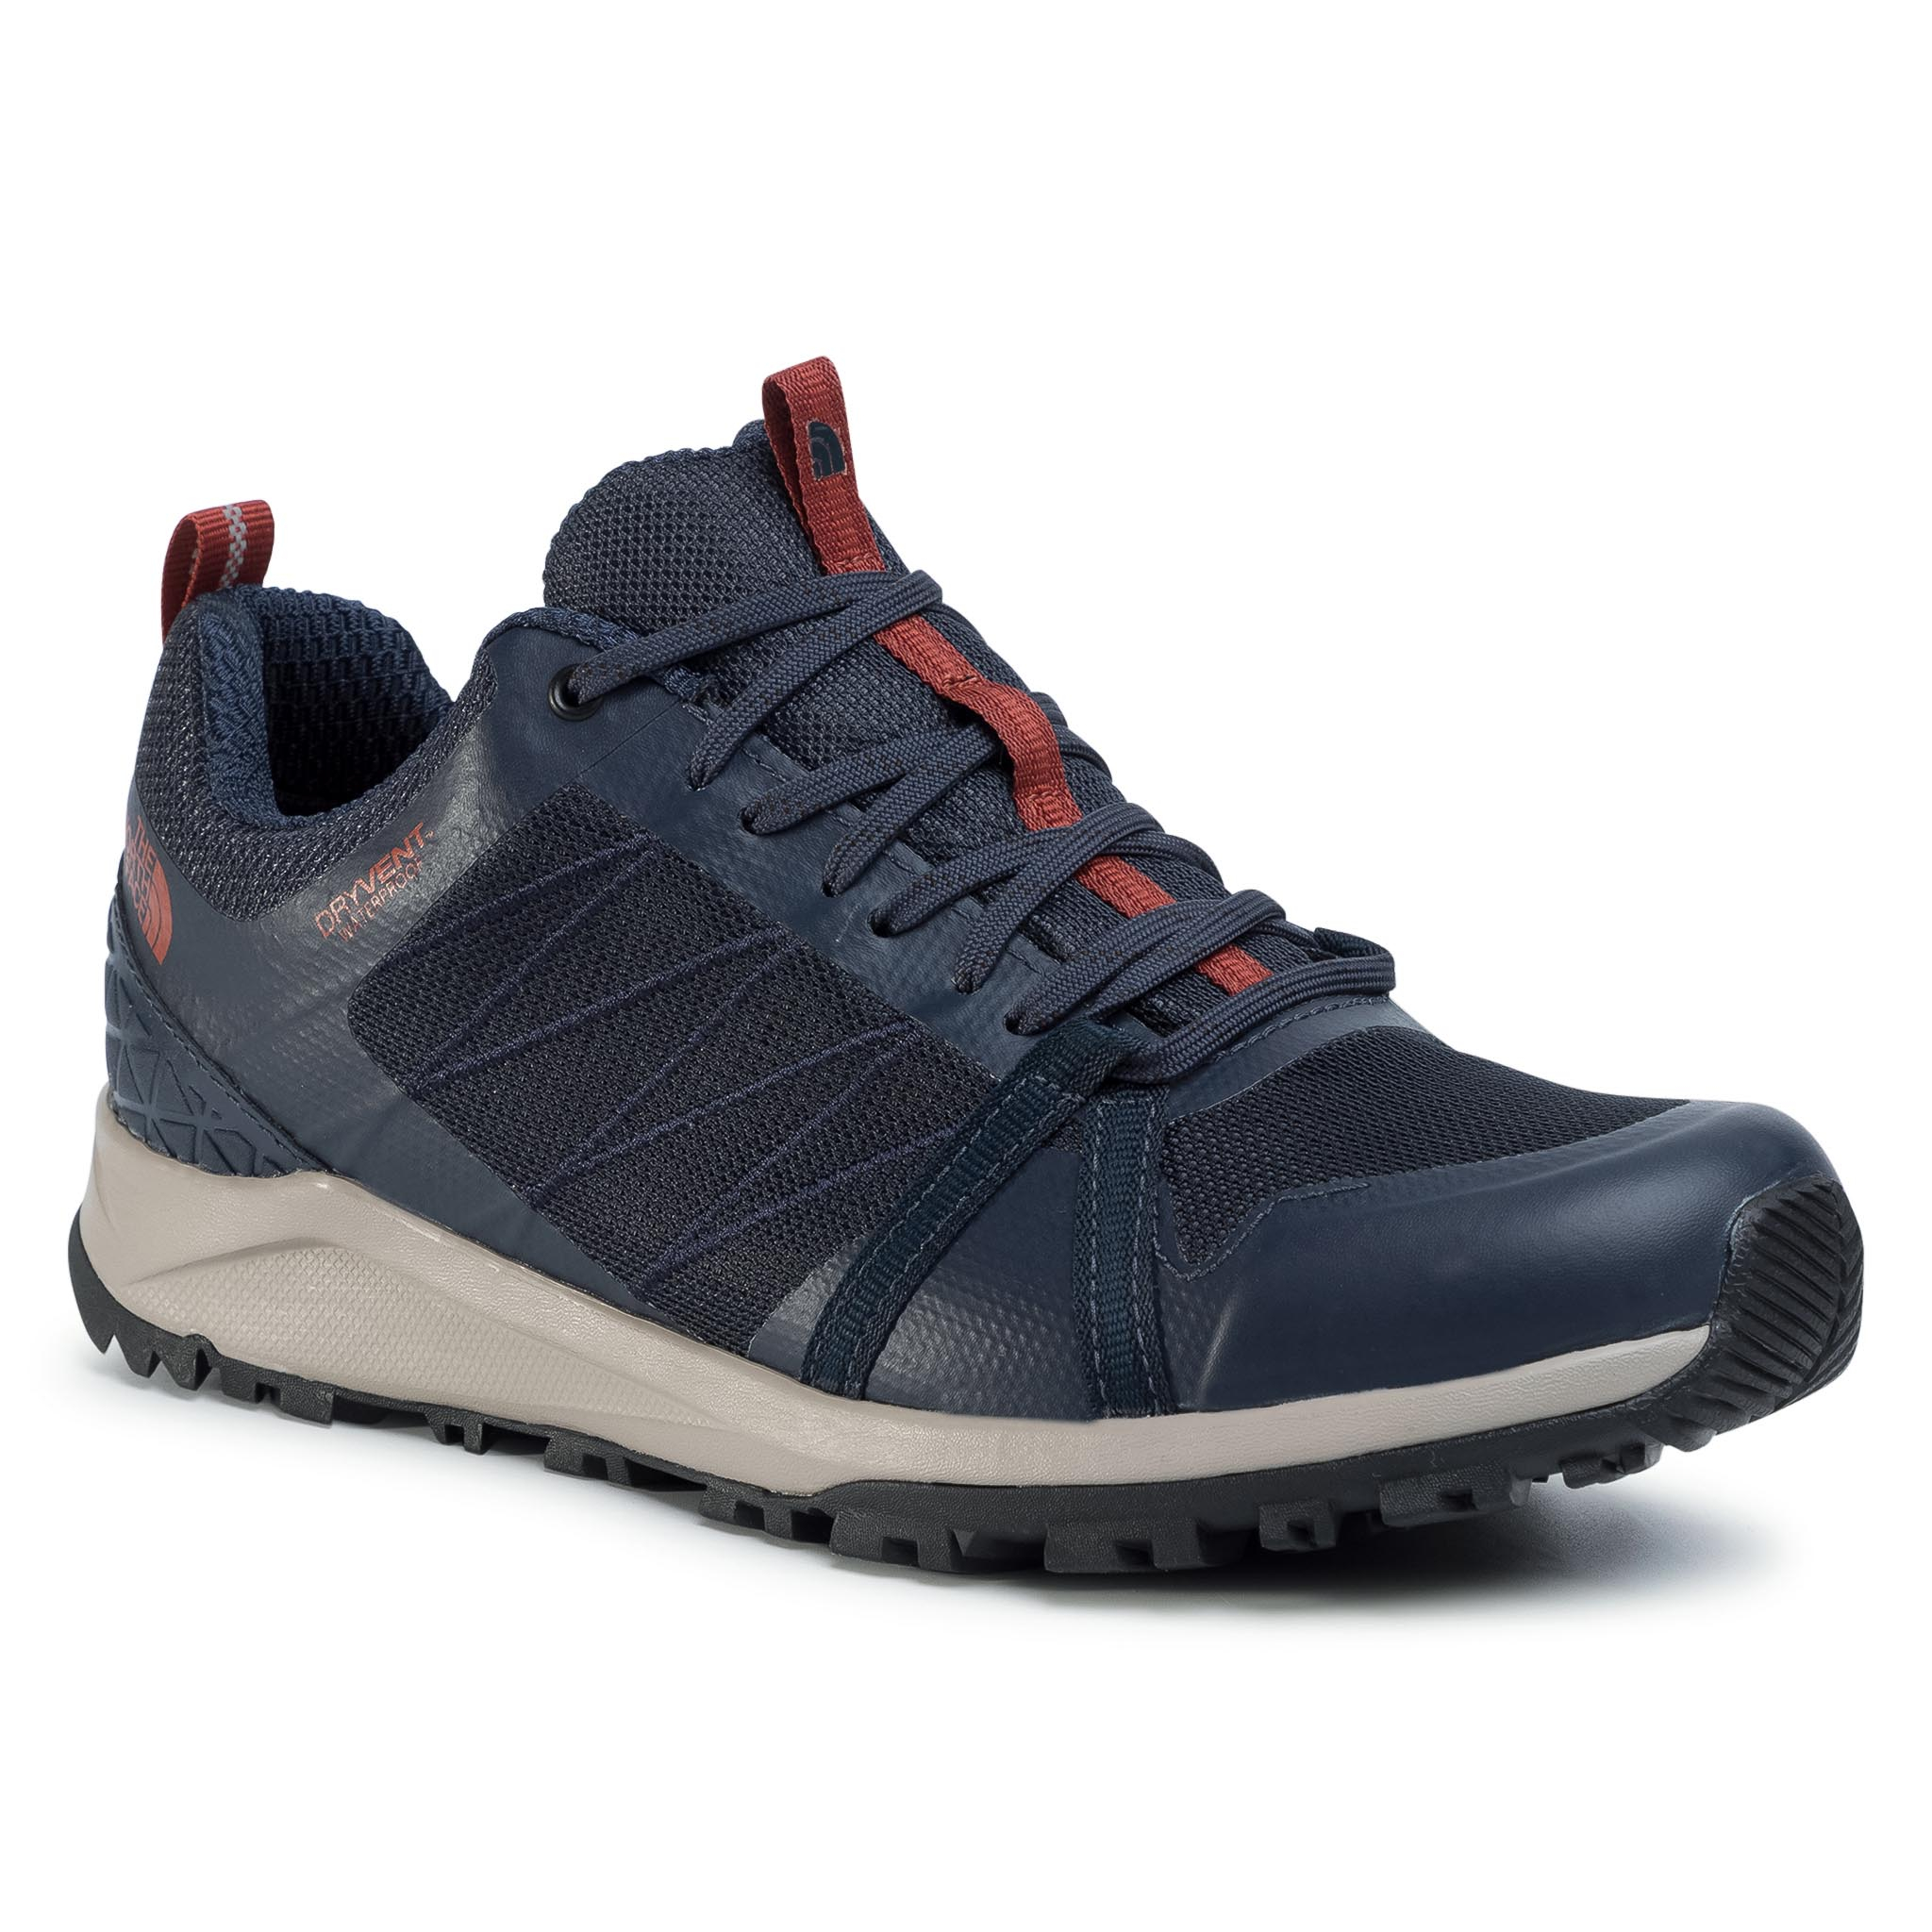 Trekkings The North Face - Litewave Fastpack Ii Wp Nf0a4pf3h551 Urban Navy/Picante Red imagine epantofi.ro 2021